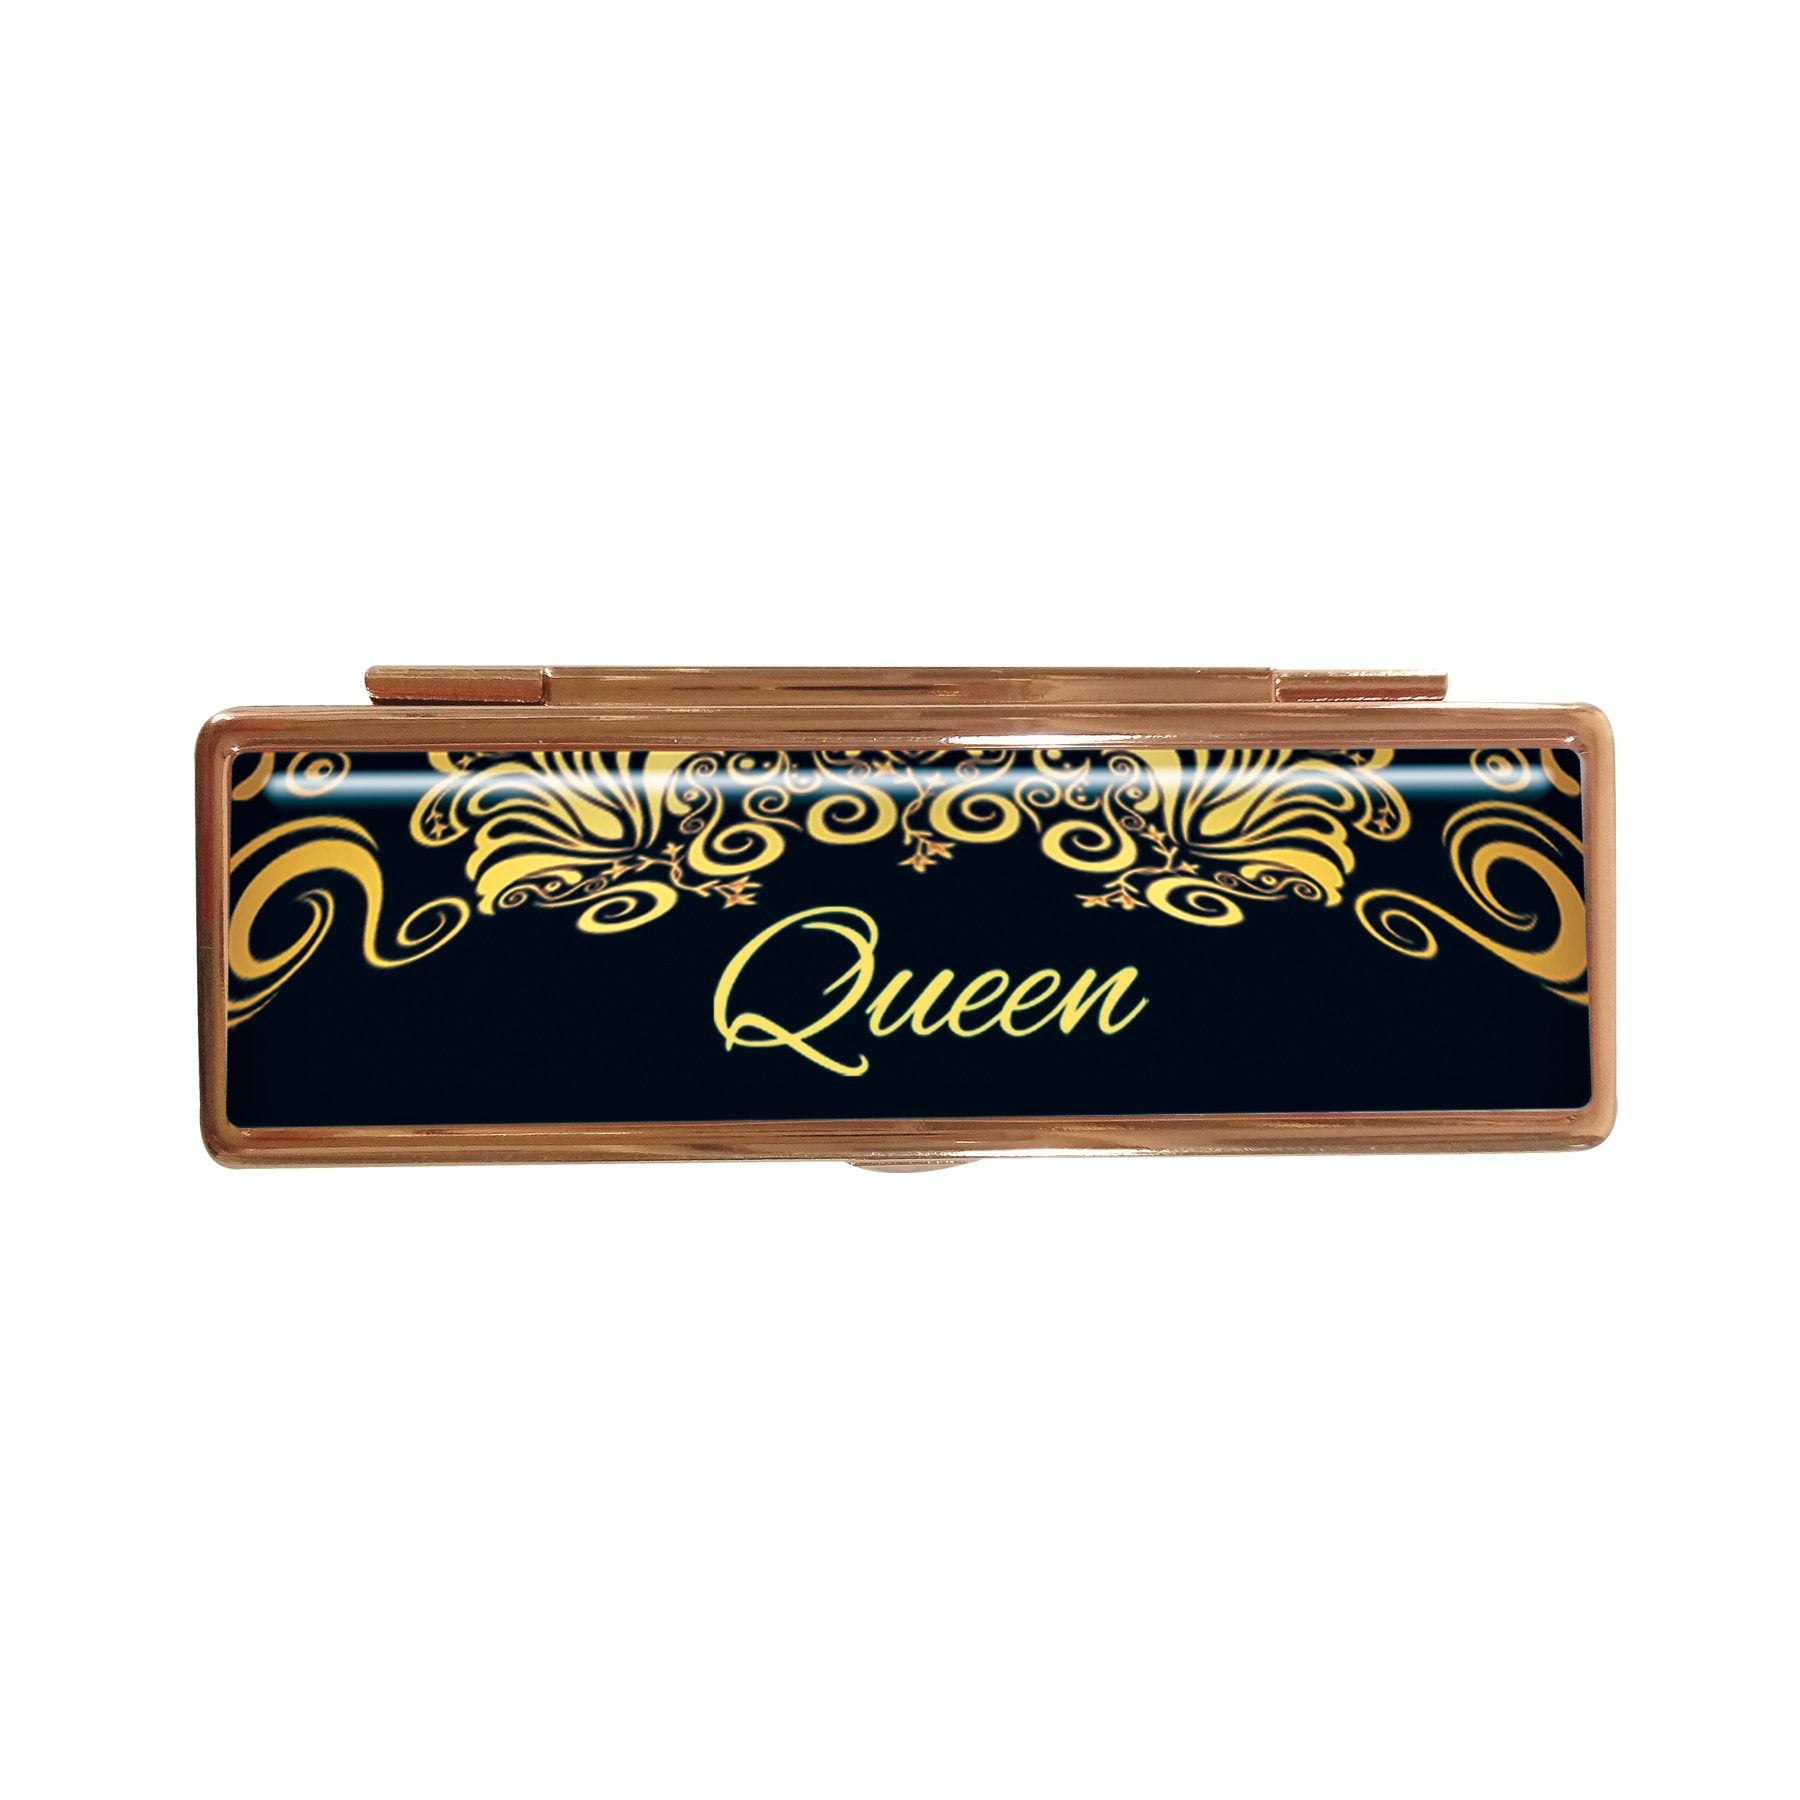 Queen: African American Lipstick Case by Shades of Color